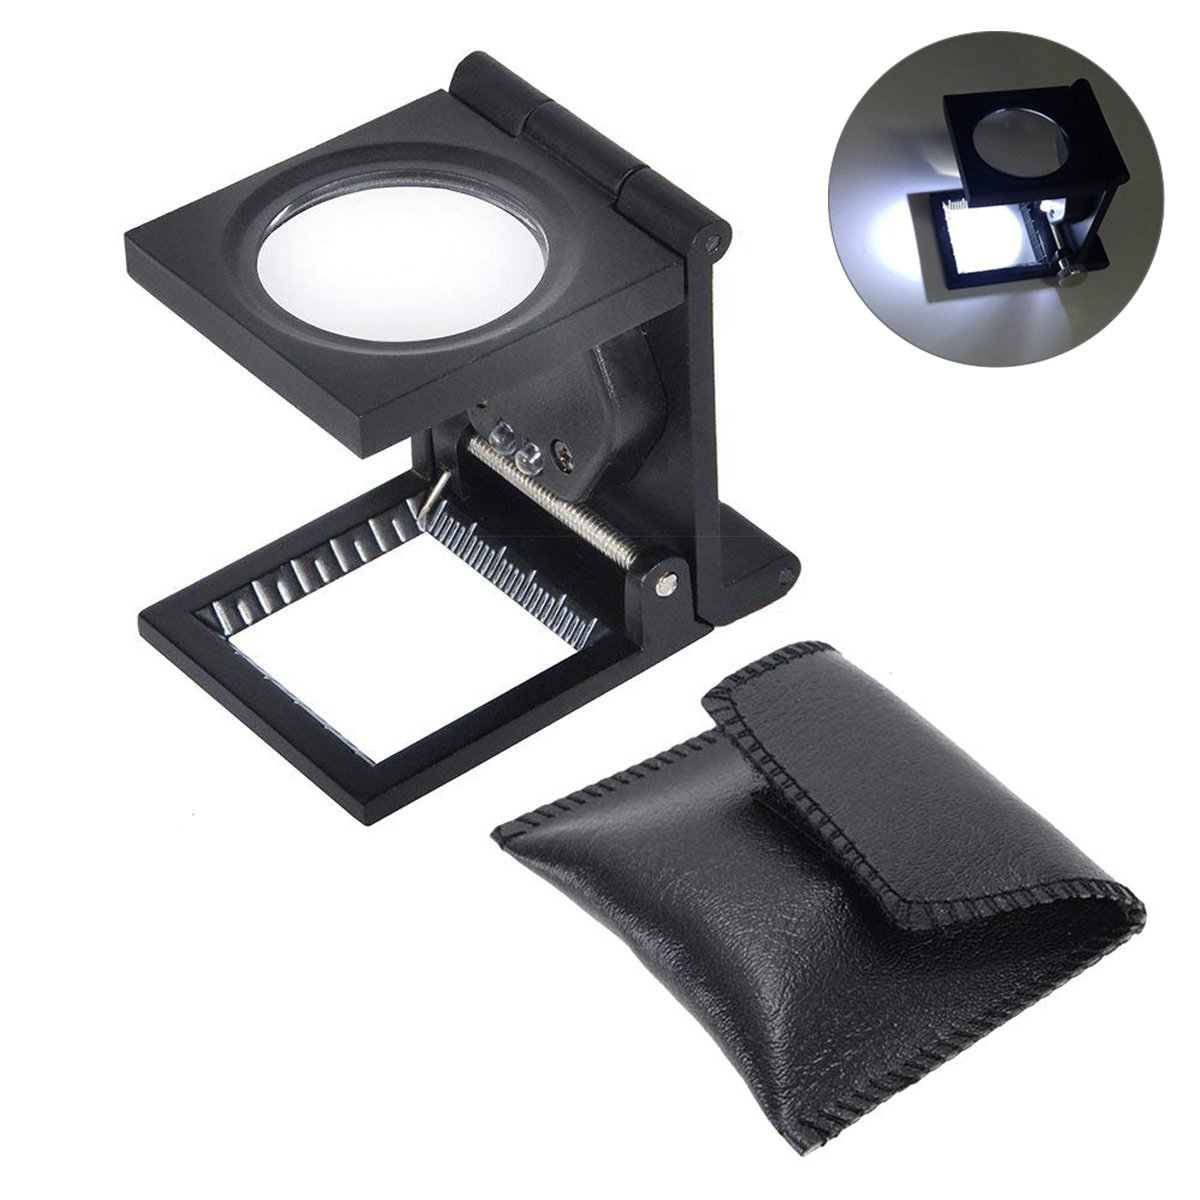 Yosoo Magnifying Portable Magnifier Collection